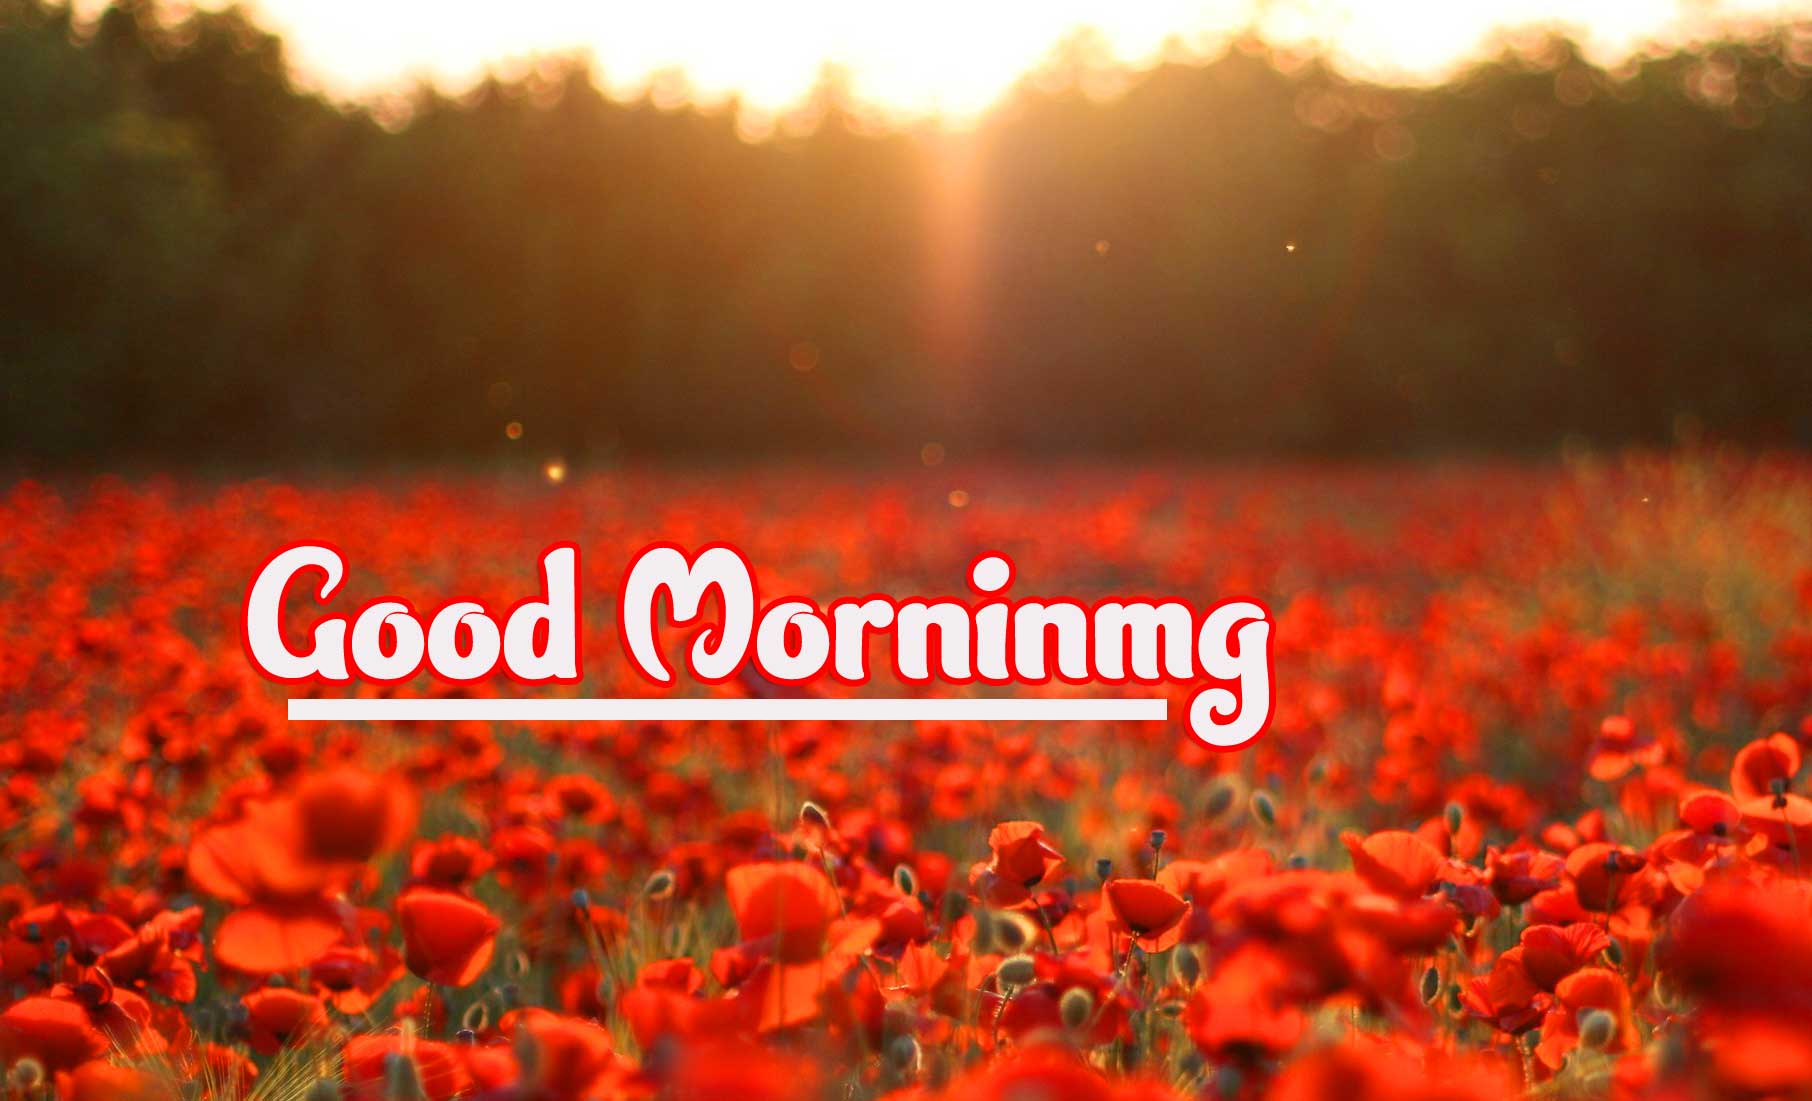 Sunrise Good Morning Wishes Images Pics Download